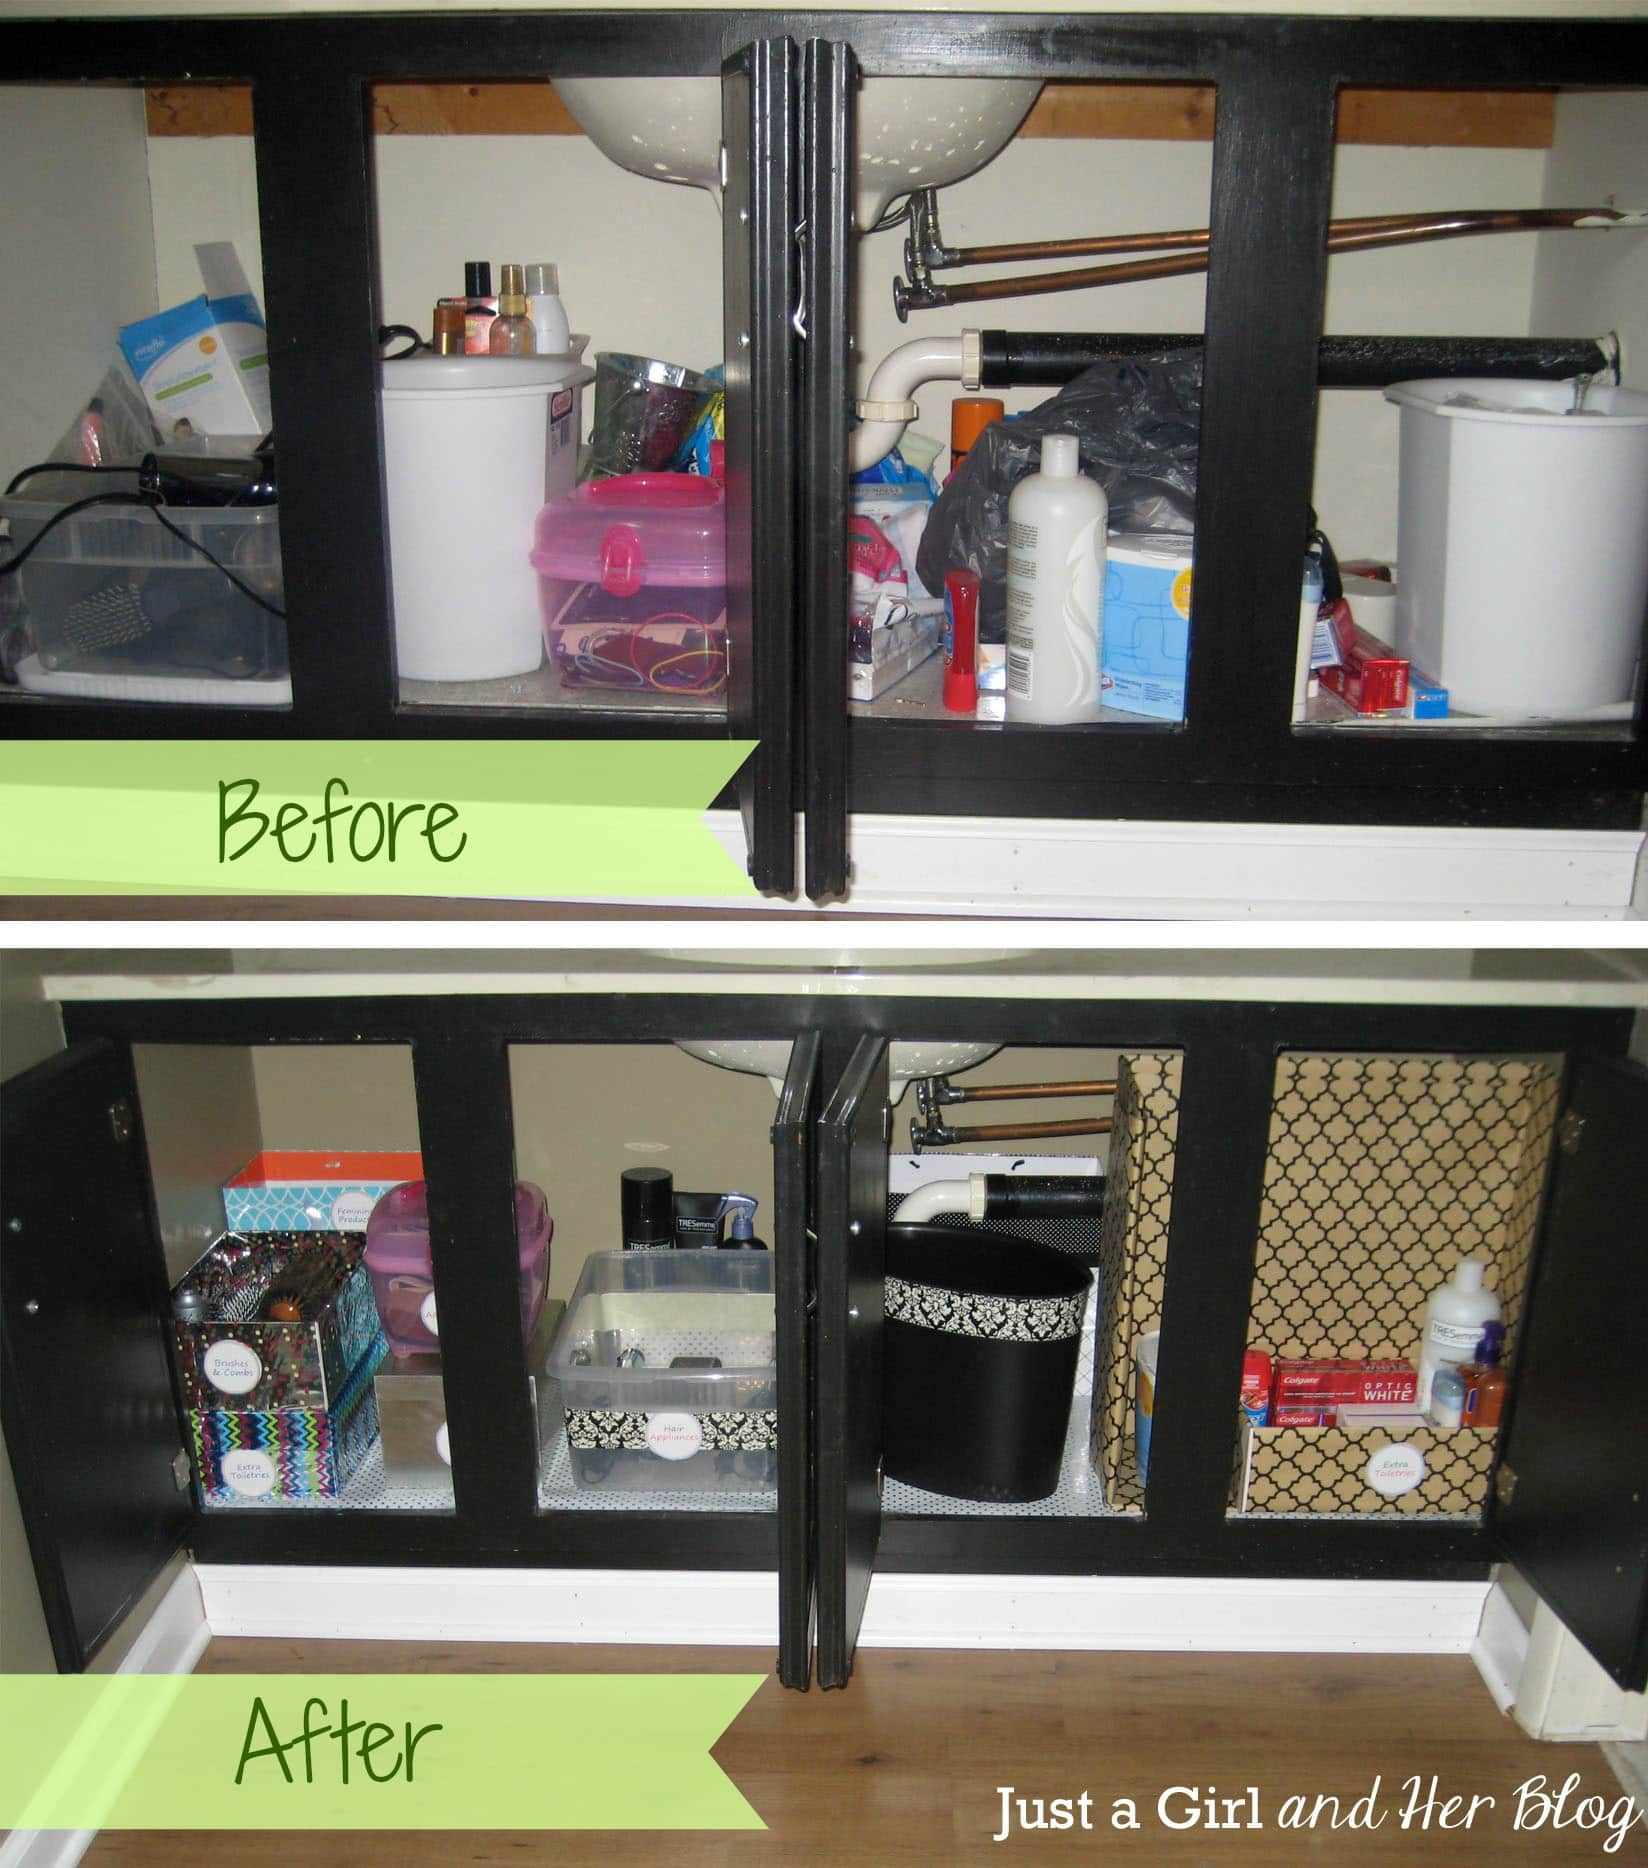 Bathroom Cabinets Organizing Ideas $0 bathroom cabinet organization